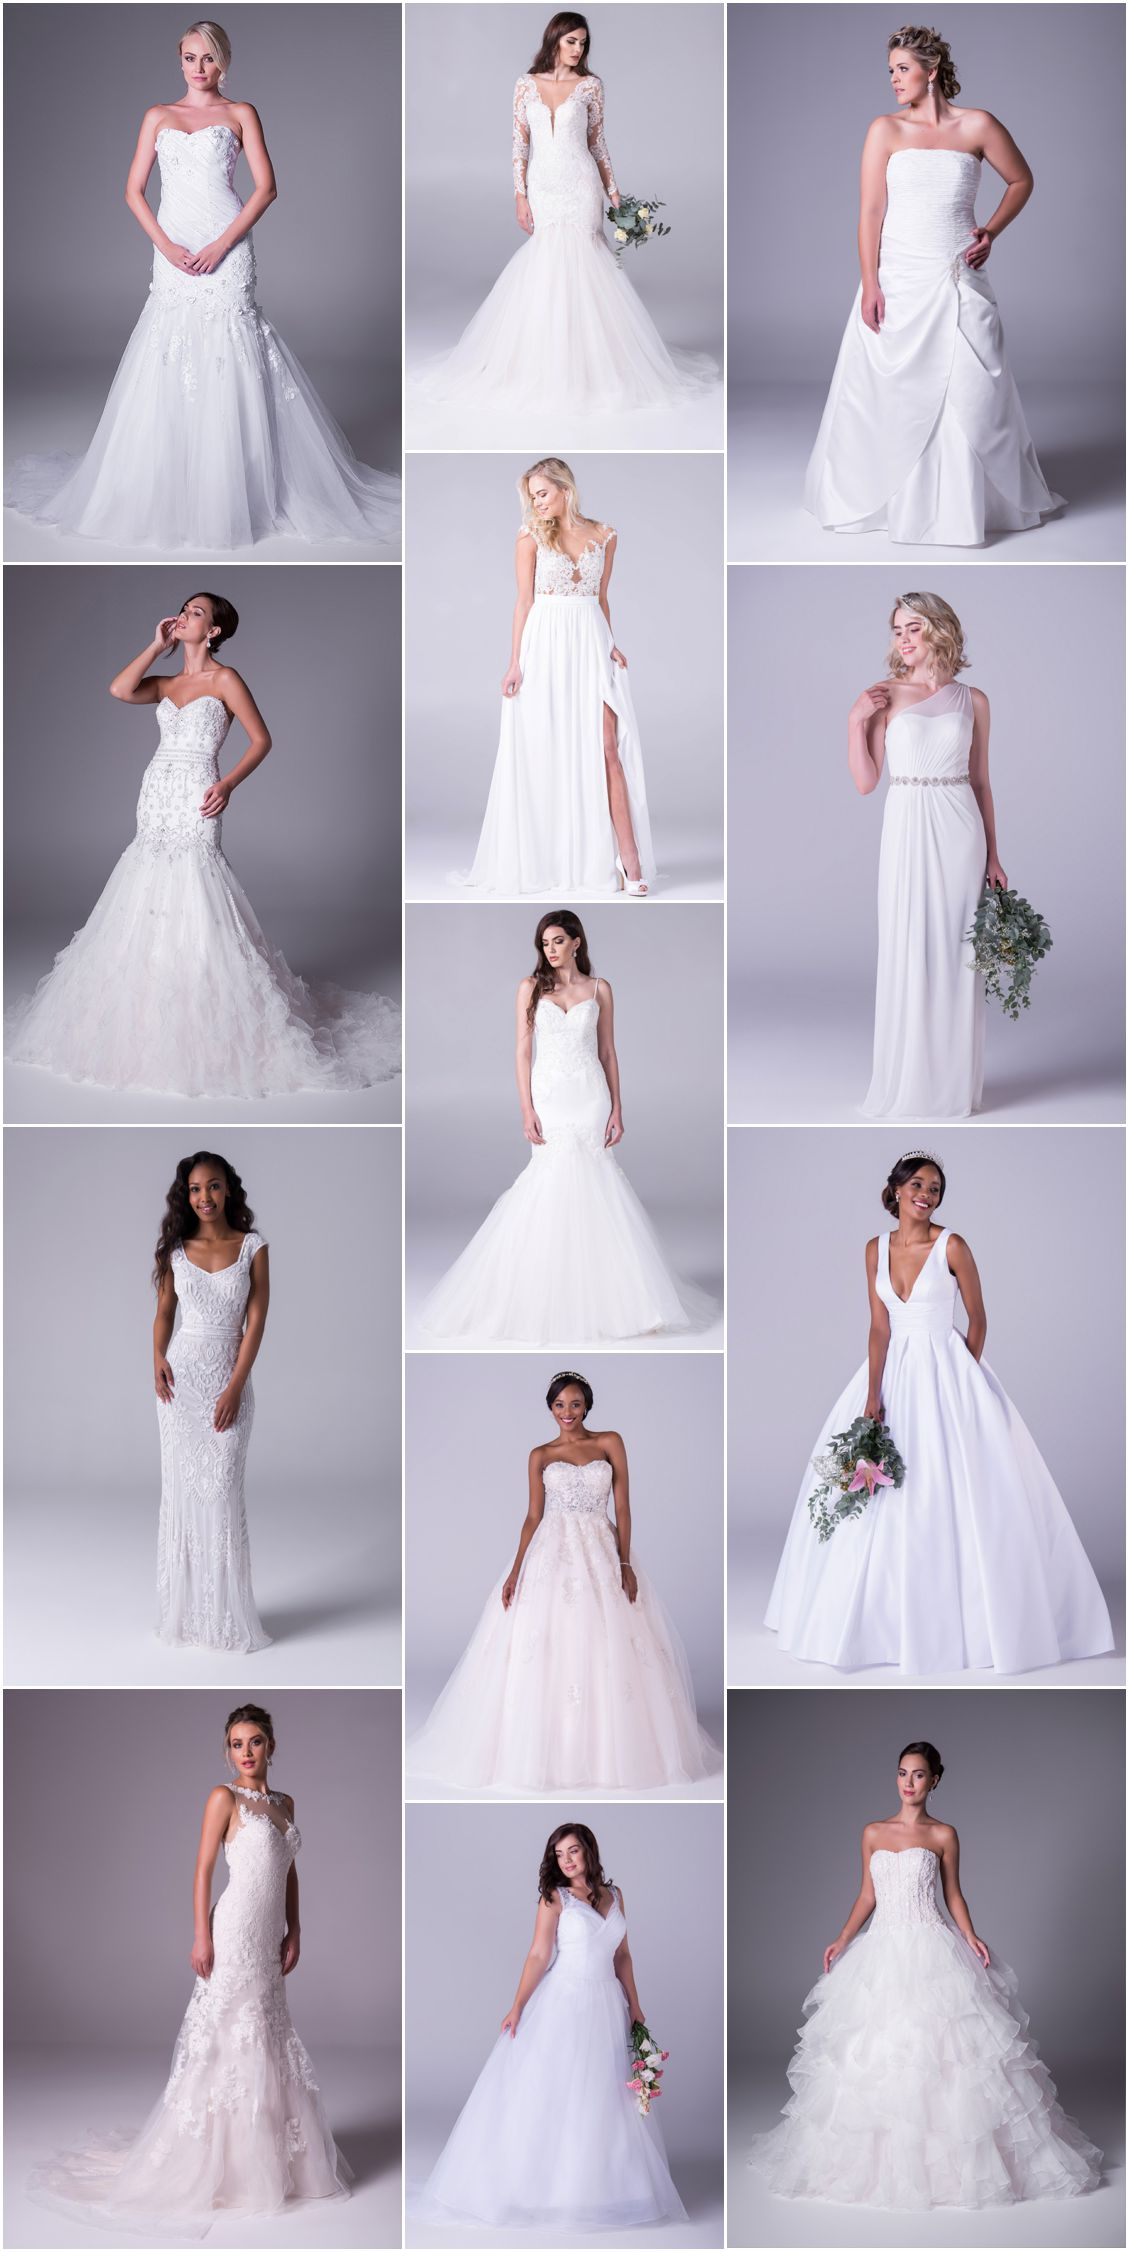 Best wedding gowns and dresses for your body type more wedding gowns ideas for different body types from bride co junglespirit